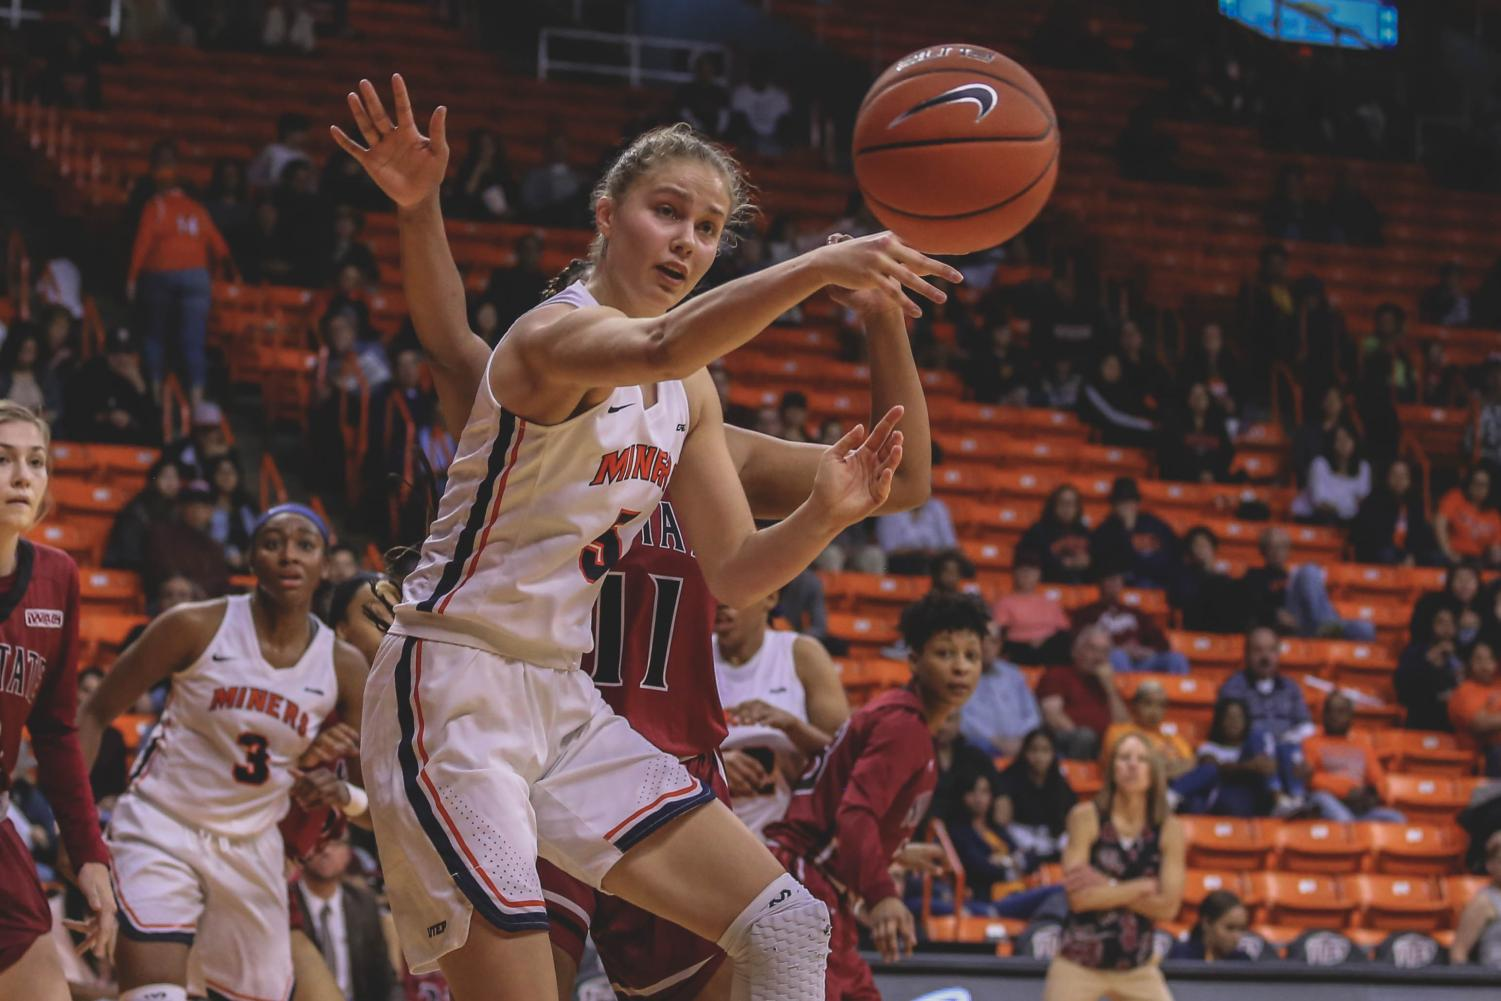 Zuzanna+Puc+gets+the+and-one+opportunity+as+she+had+her+second+consecutive+double-double+with+17+points+and+10+rebounds.+